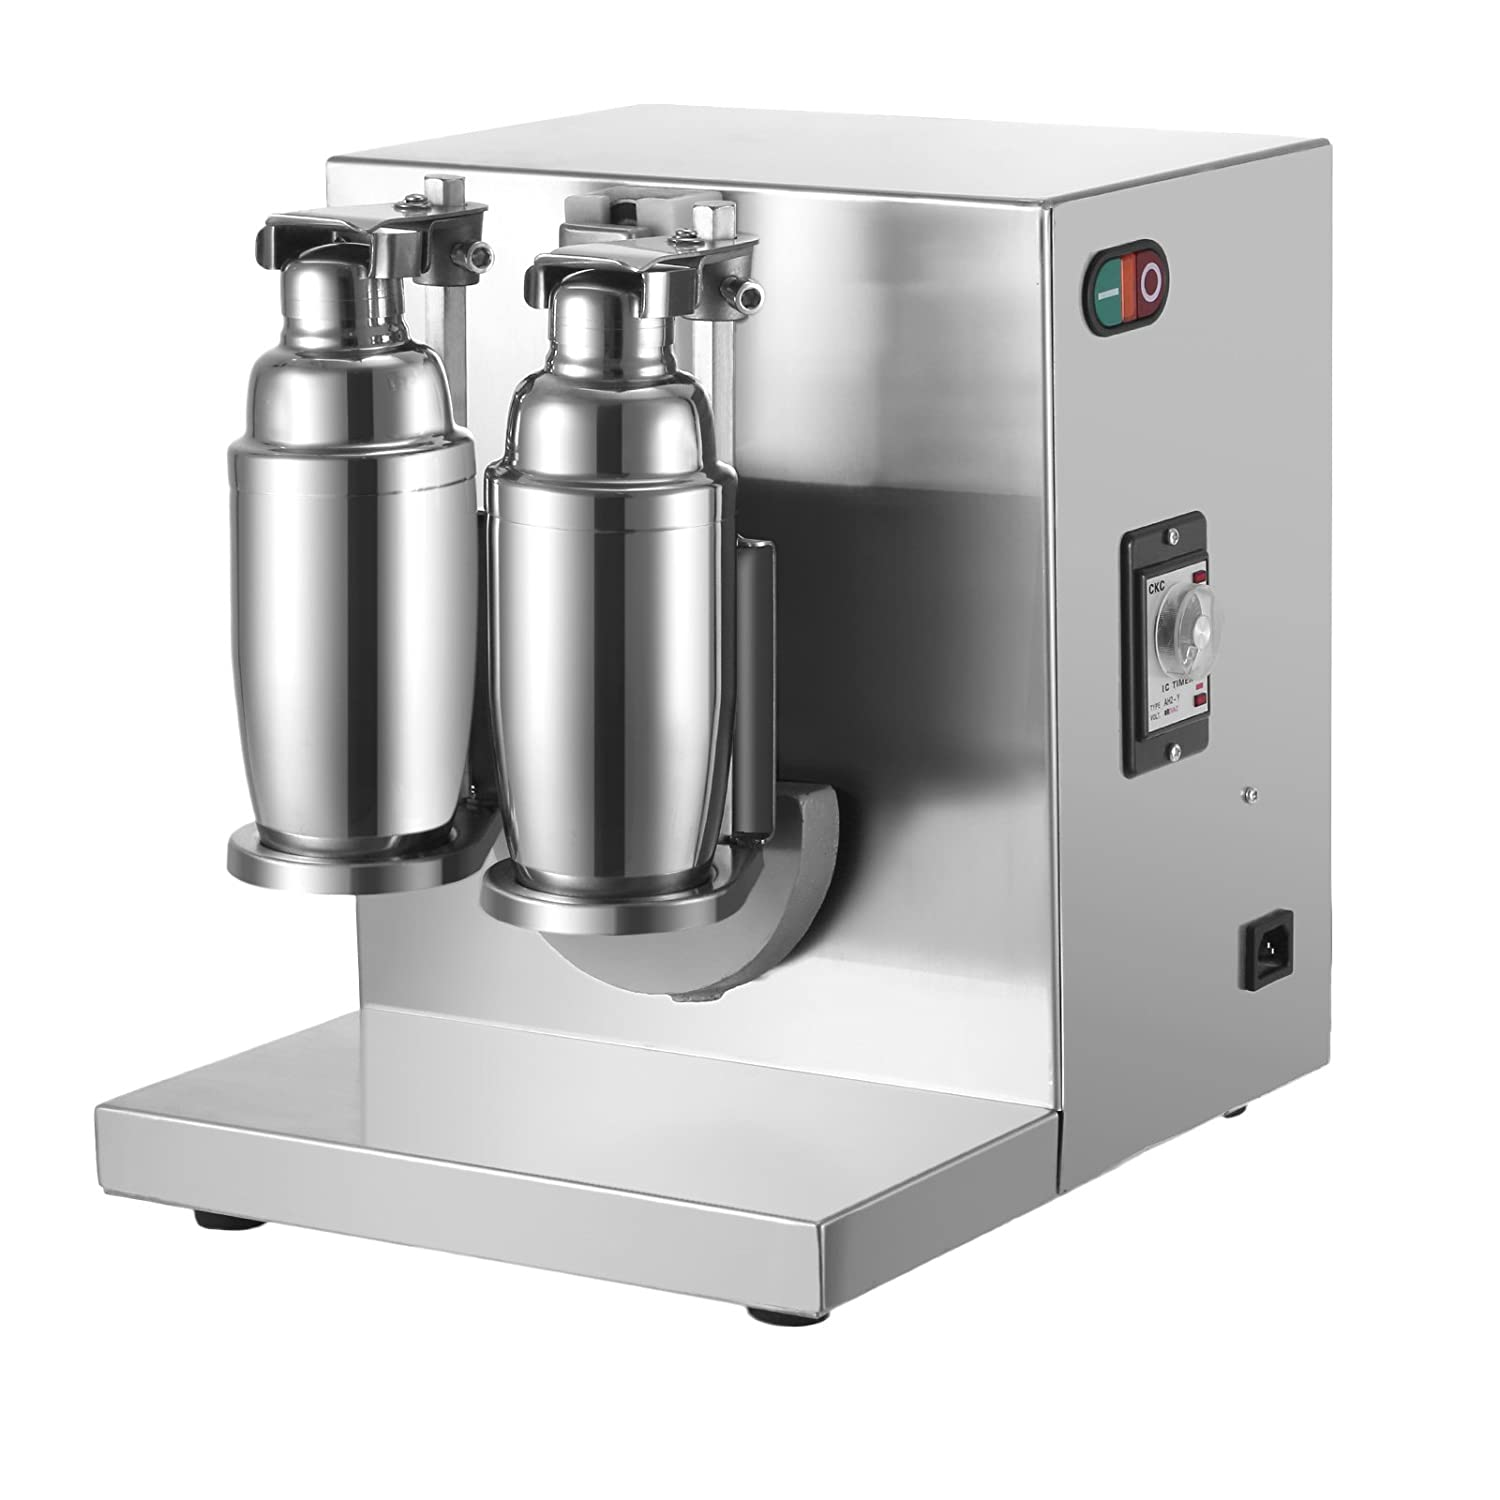 Happybuy 120W 110V Electric Milk Tea Shaker Machine 400r/min Double Frame Auto Stainless Steel for Restaurant, 35x12x14 Inch, Sliver